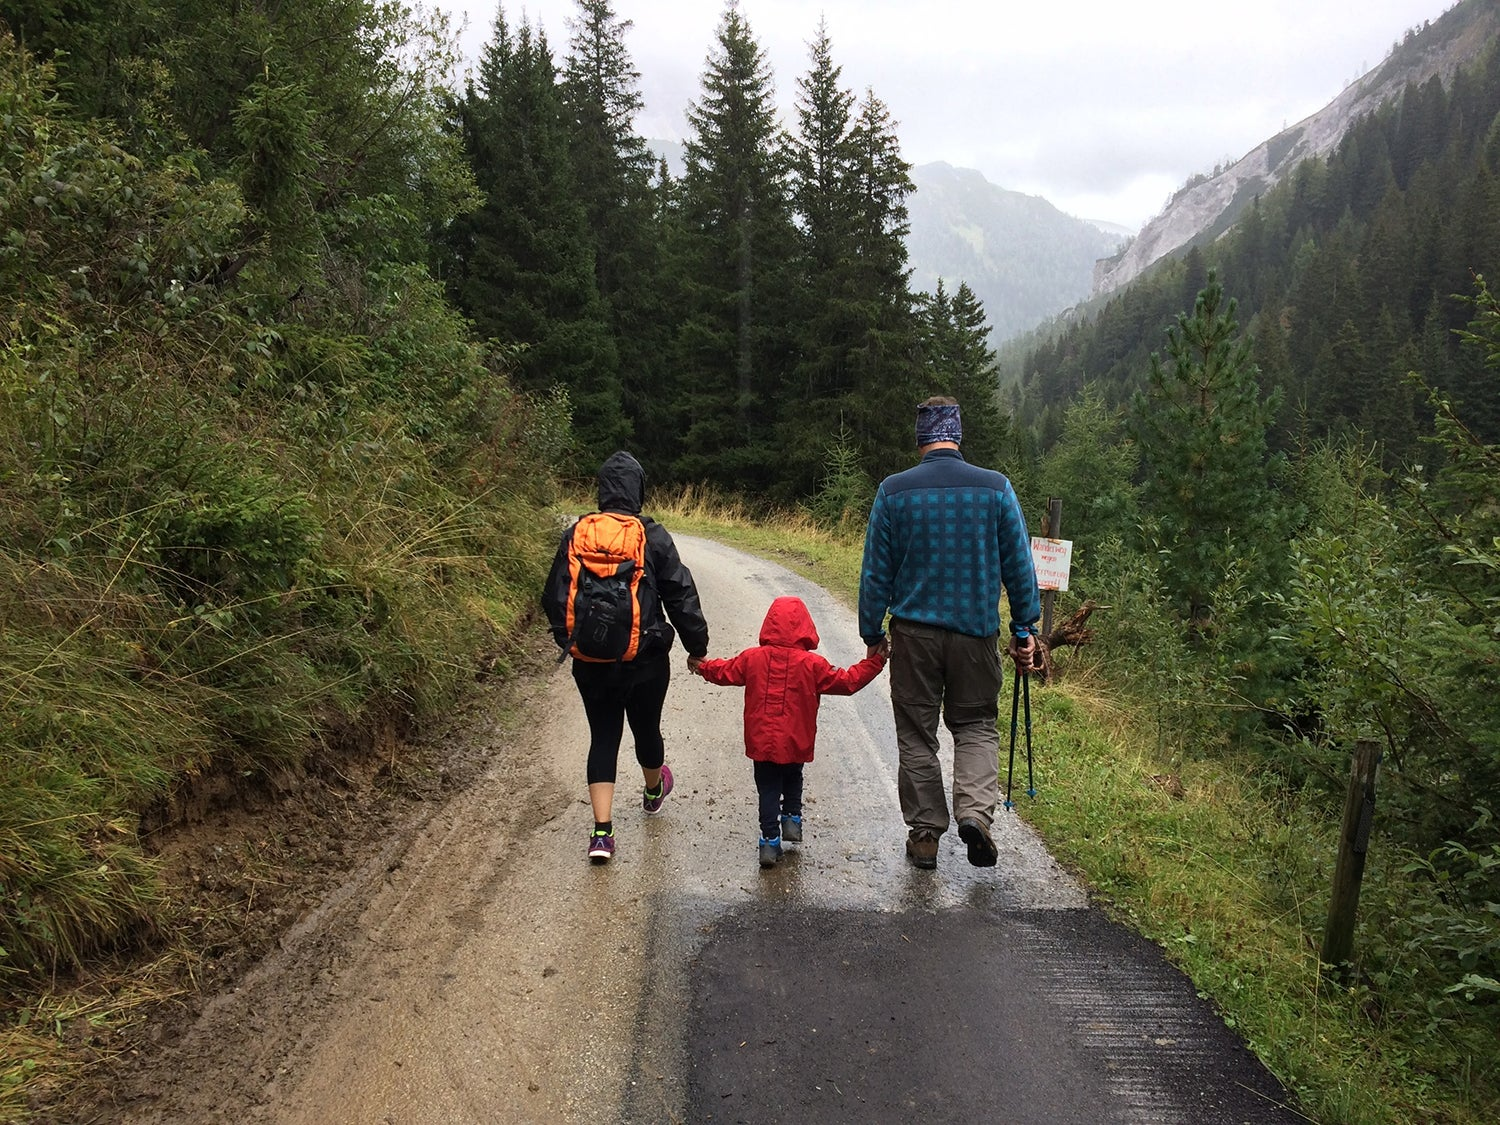 Family walking through on trail in rain surrounded by forest and mountains.